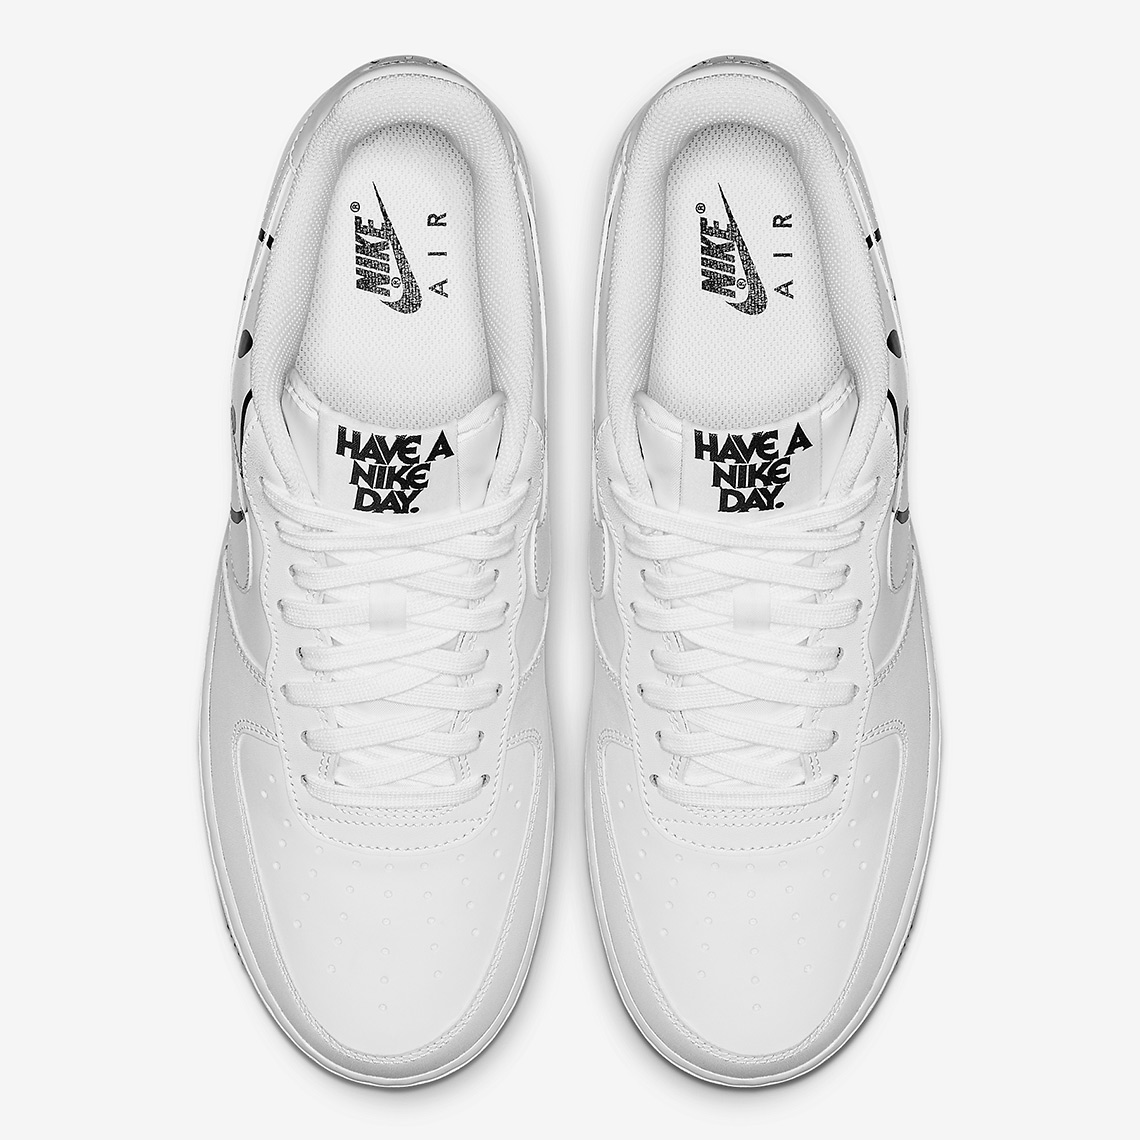 Nike Air Force 1 Low Have A Nike Day Release Info | Clothes